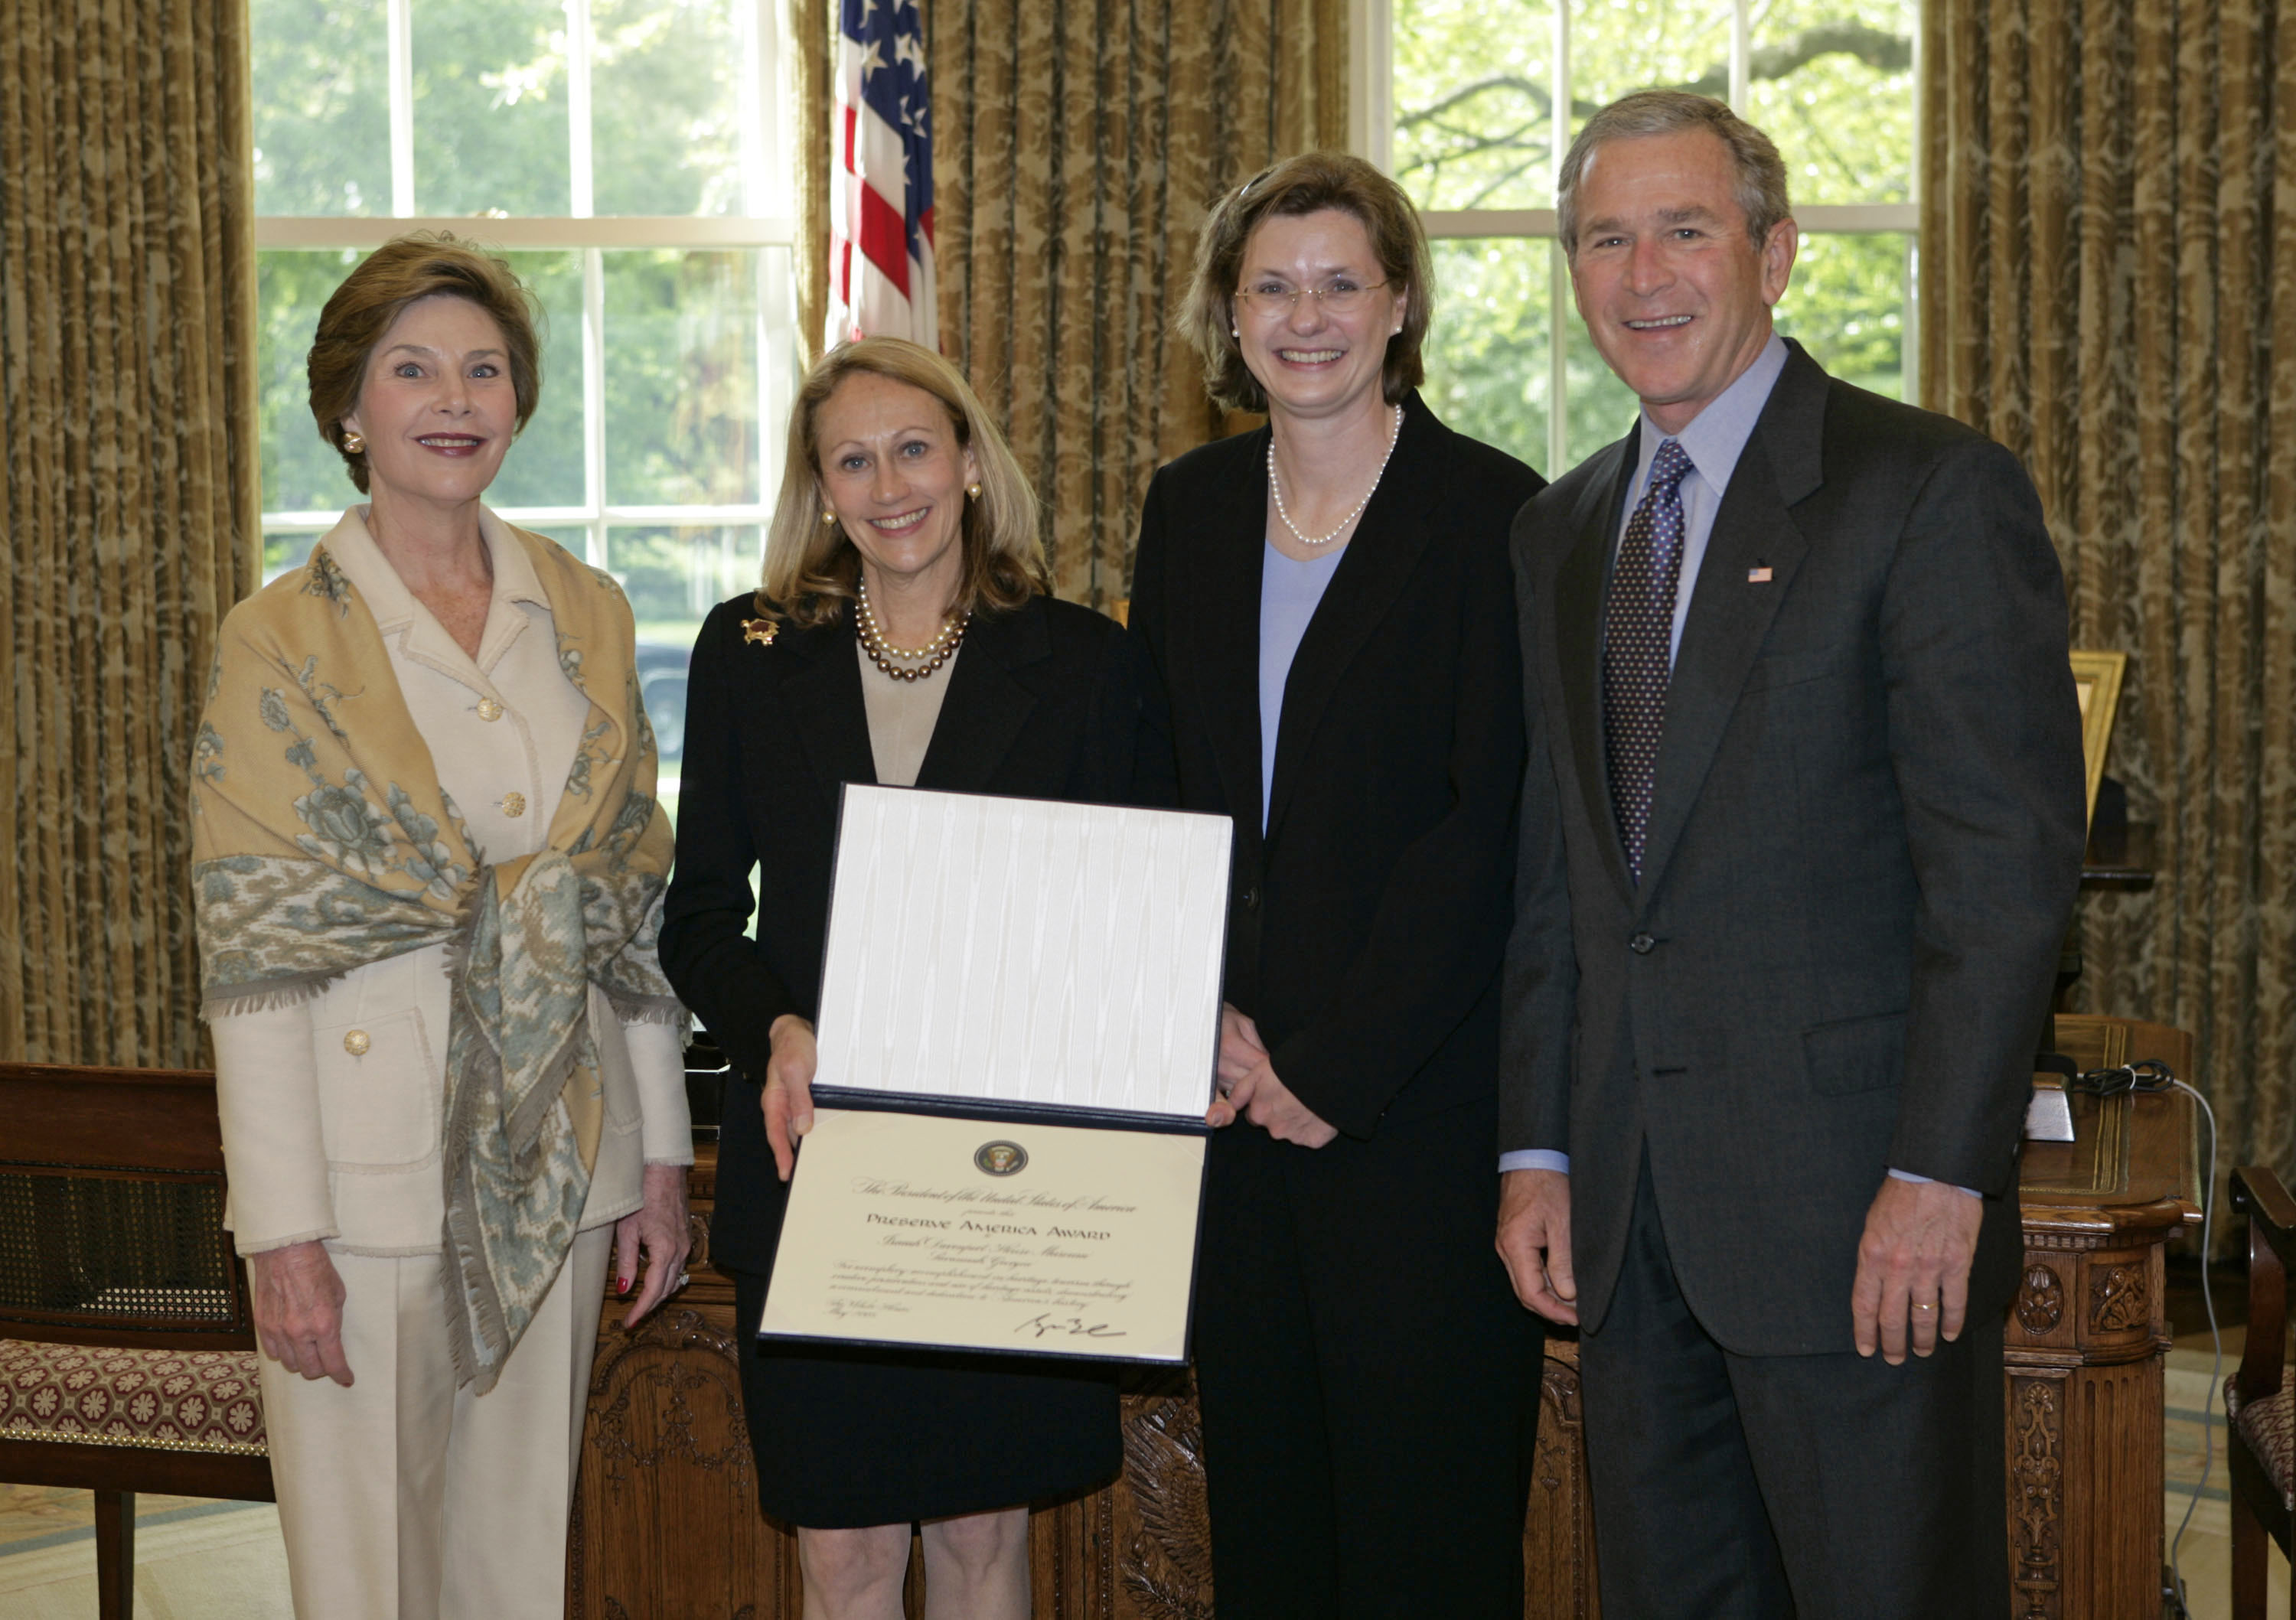 President George W. Bush and Laura Bush present the 2005 Preserve America Presidential Award to Zelda Tenenbaum, President, Board of Trustees, Historic Savannah Foundation, left, and Jamie Credle, Director, Isaiah Davenport House Museum, both of Savannah, Georgia, in the Oval Office Monday, May 2, 2005. (White House photo by Eric Draper)